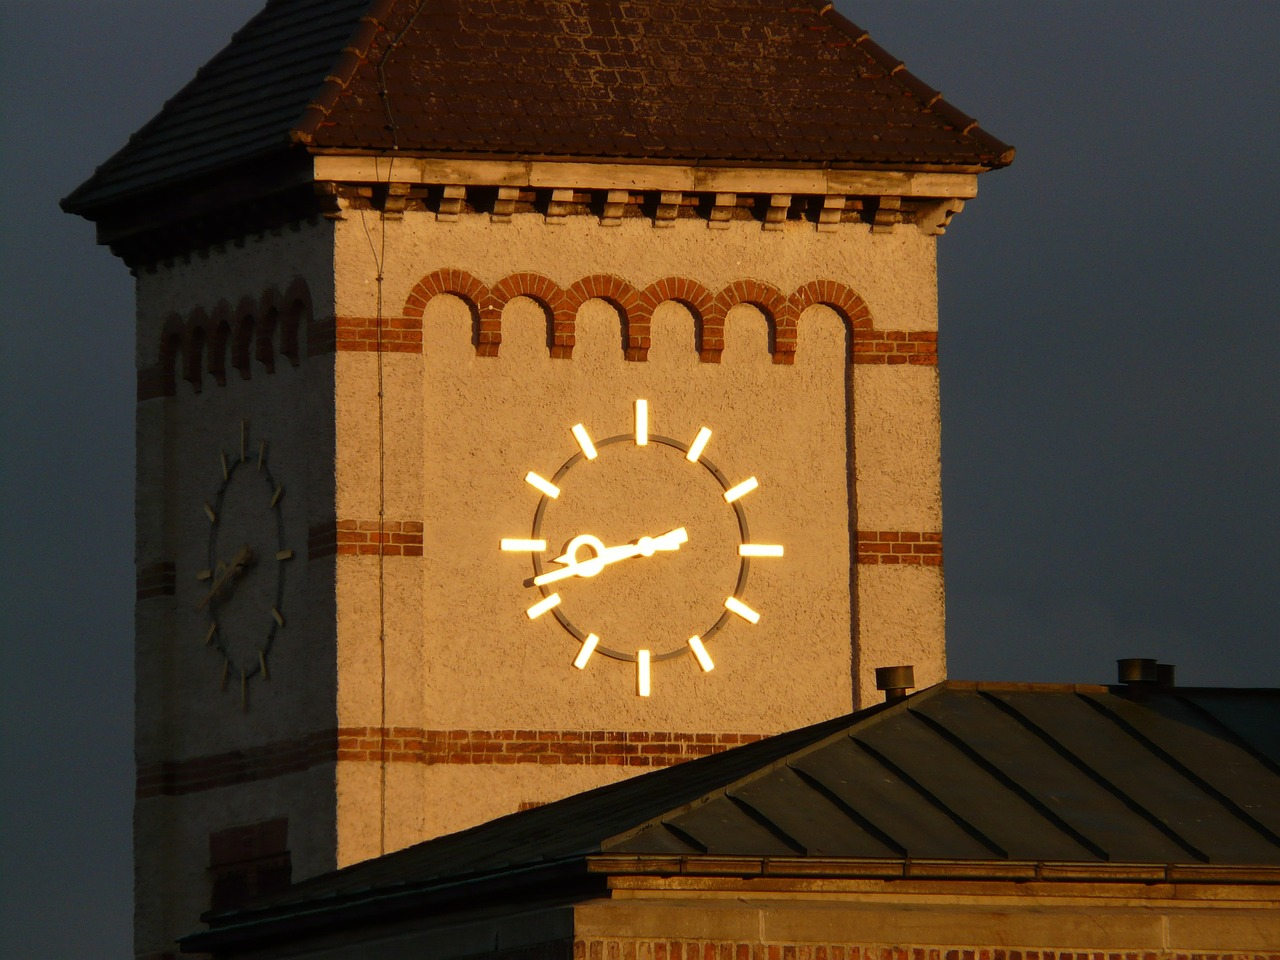 steeple clock time of free photo